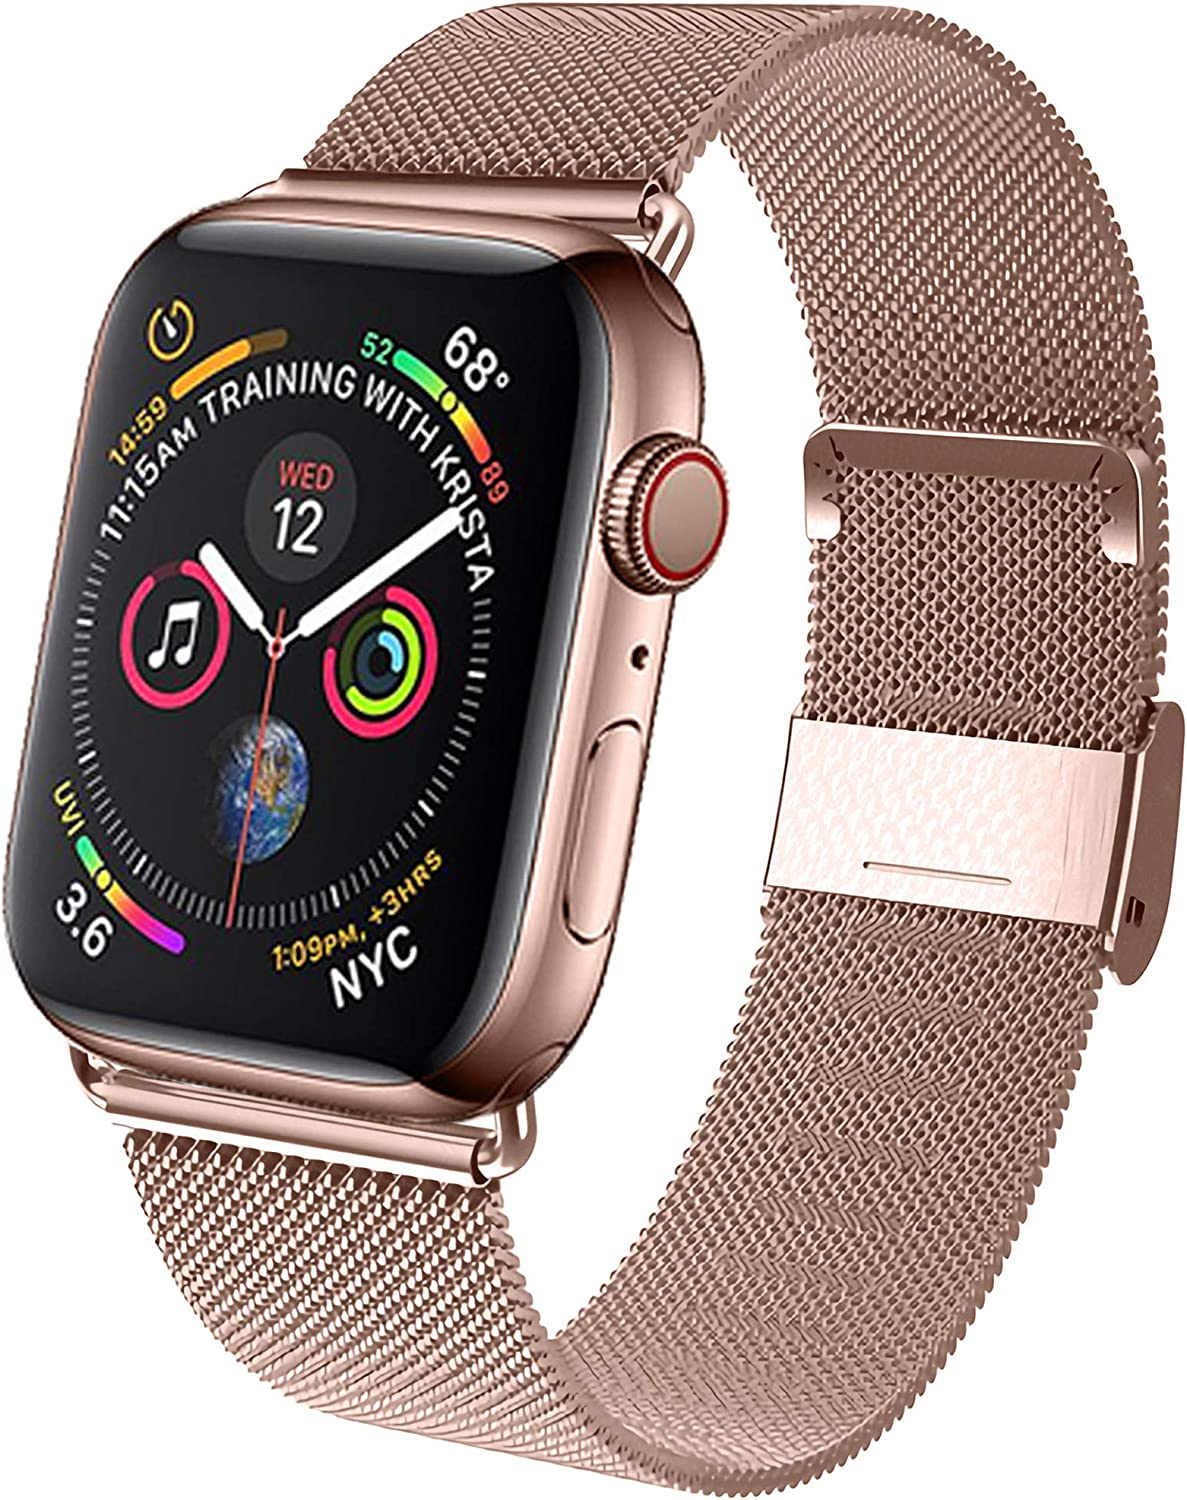 GBPOOT Band Compatible with Apple Watch Band 38mm 40mm 42mm 44mm, Wristband Loop Replacement Band for Iwatch Series 6/SE/5/4/3/2/1,PinkGold,38mm/40mm